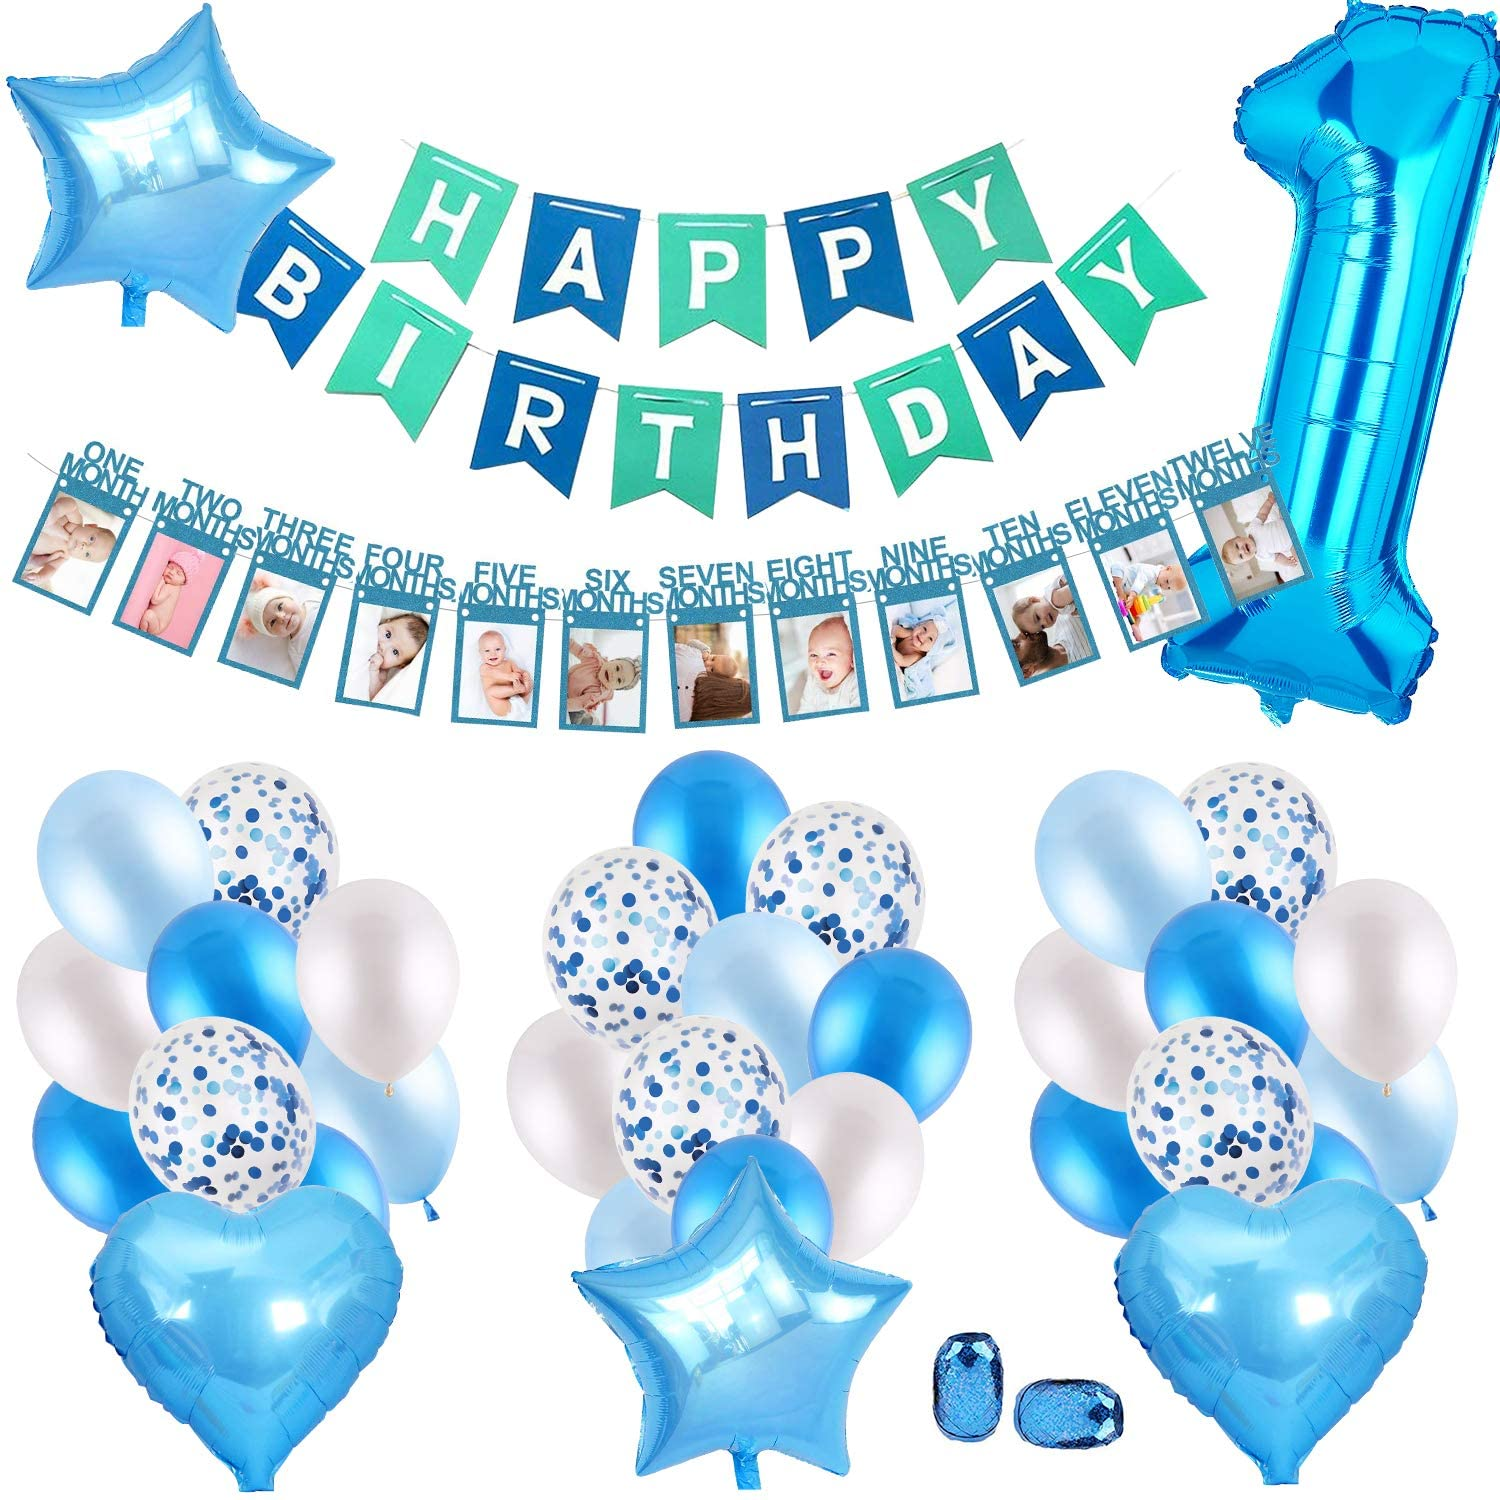 1st birthday - 25 Piece Blue and Green Photo Banner party pack